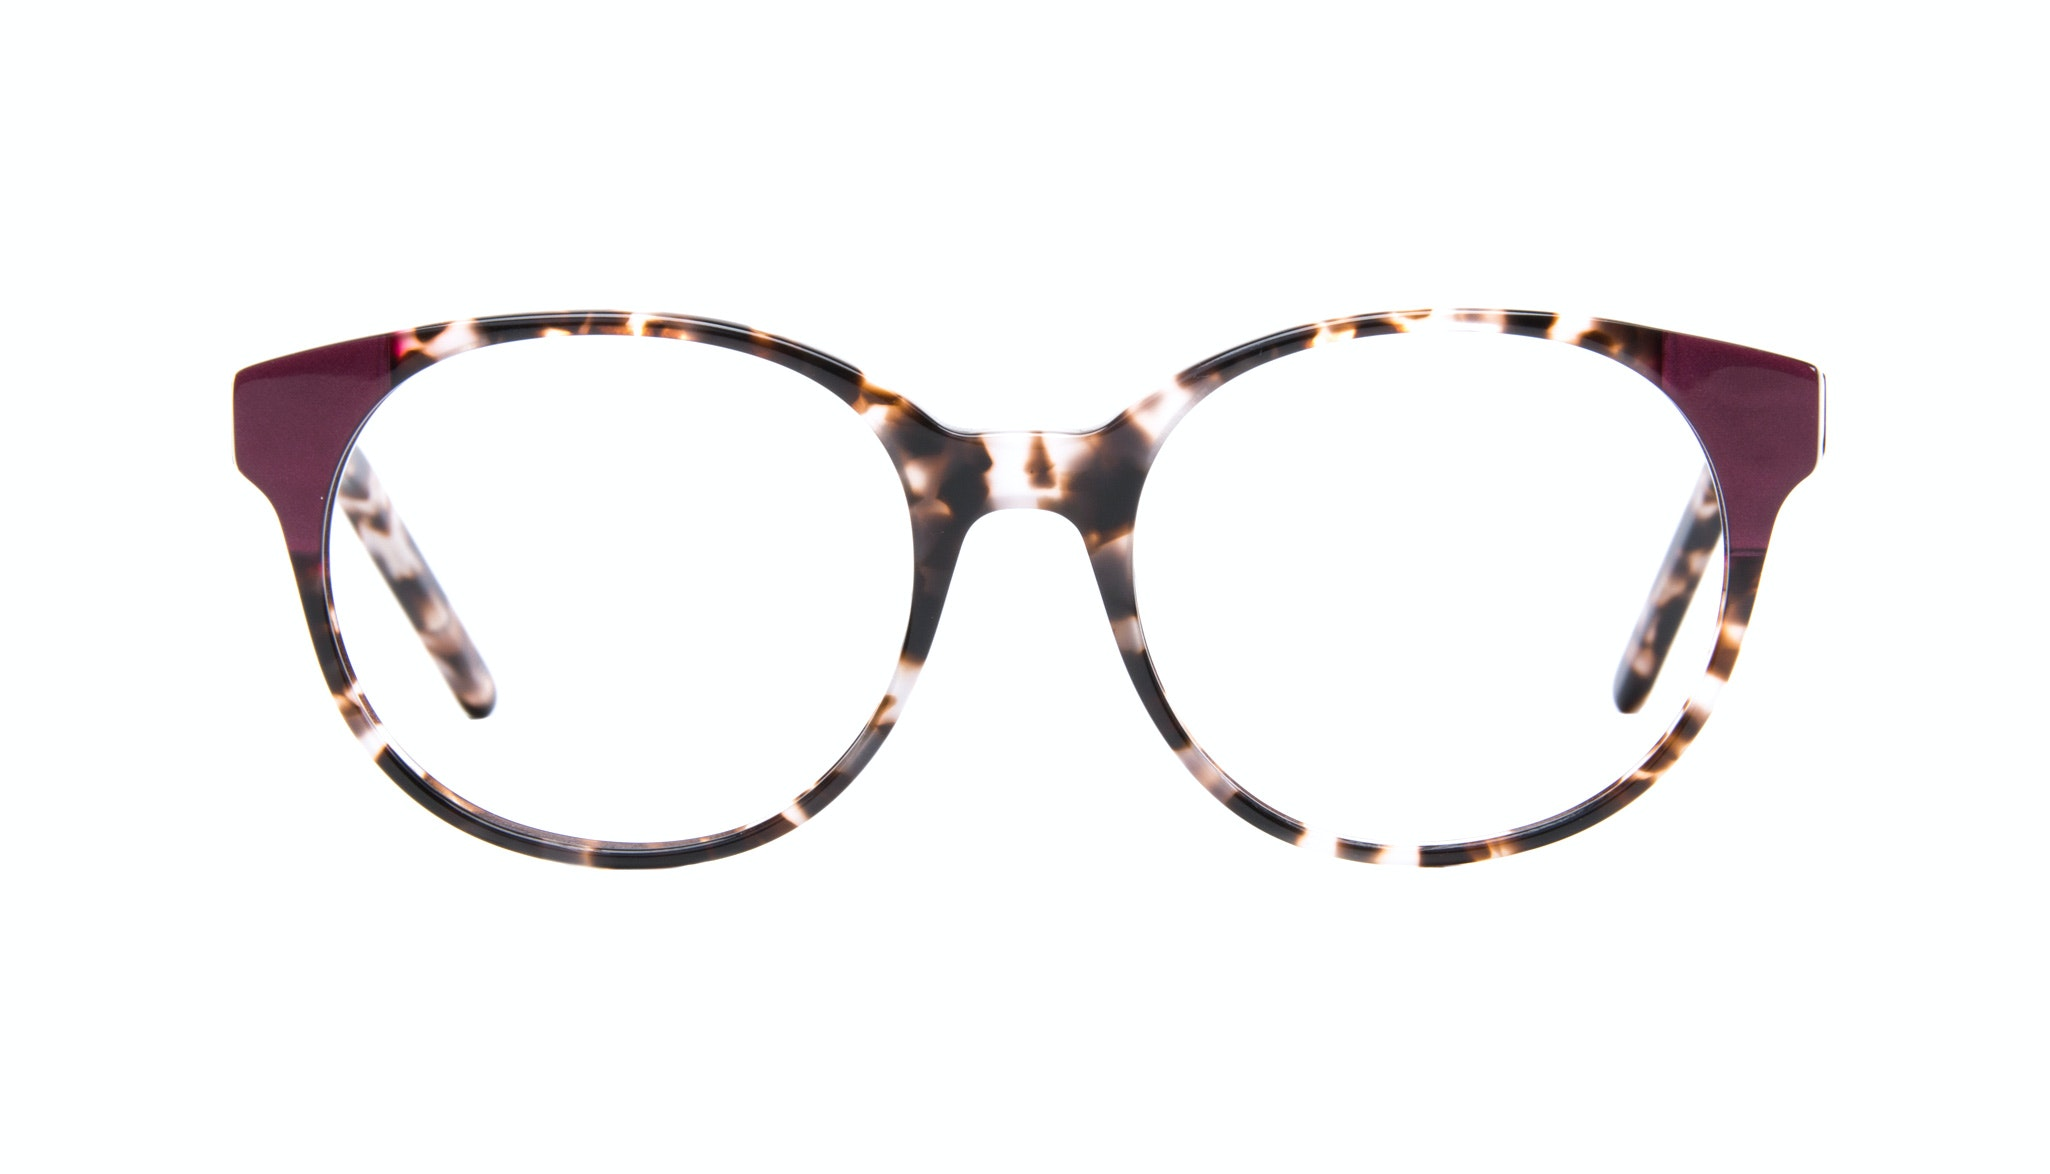 Affordable Fashion Glasses Round Eyeglasses Women Bis Mocha Plum Front